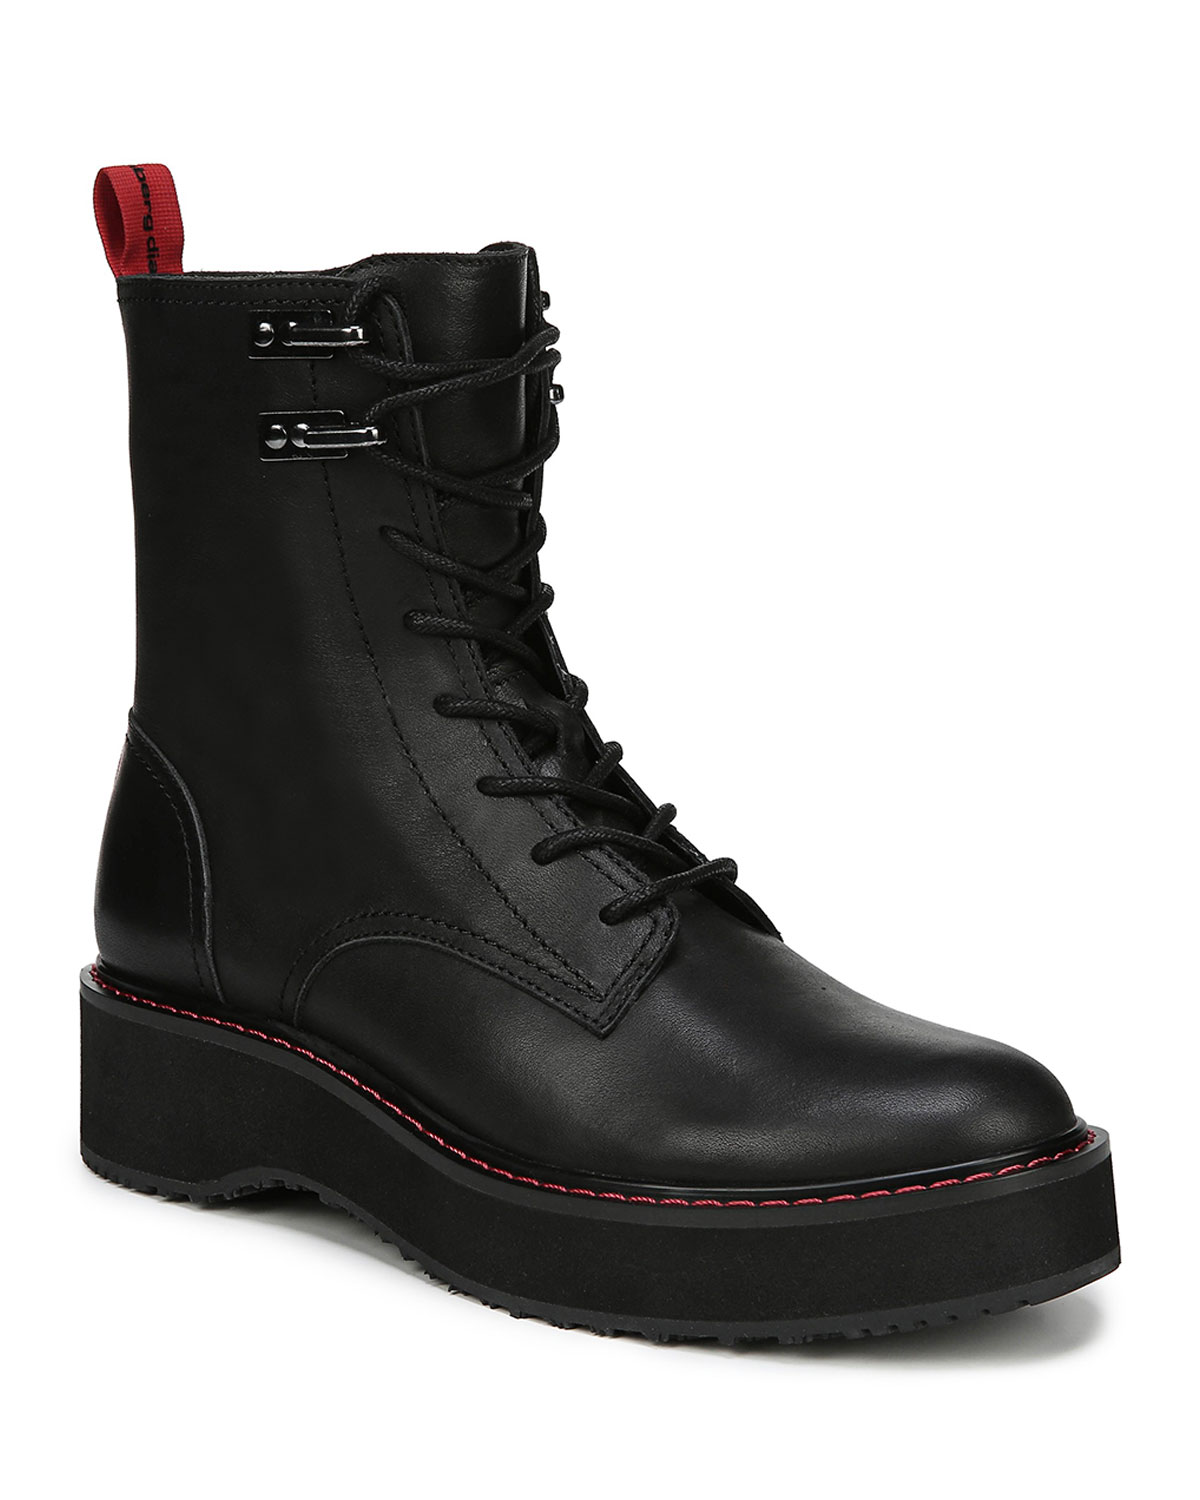 In Charge Lace-Up Leather Ankle Boots in Black